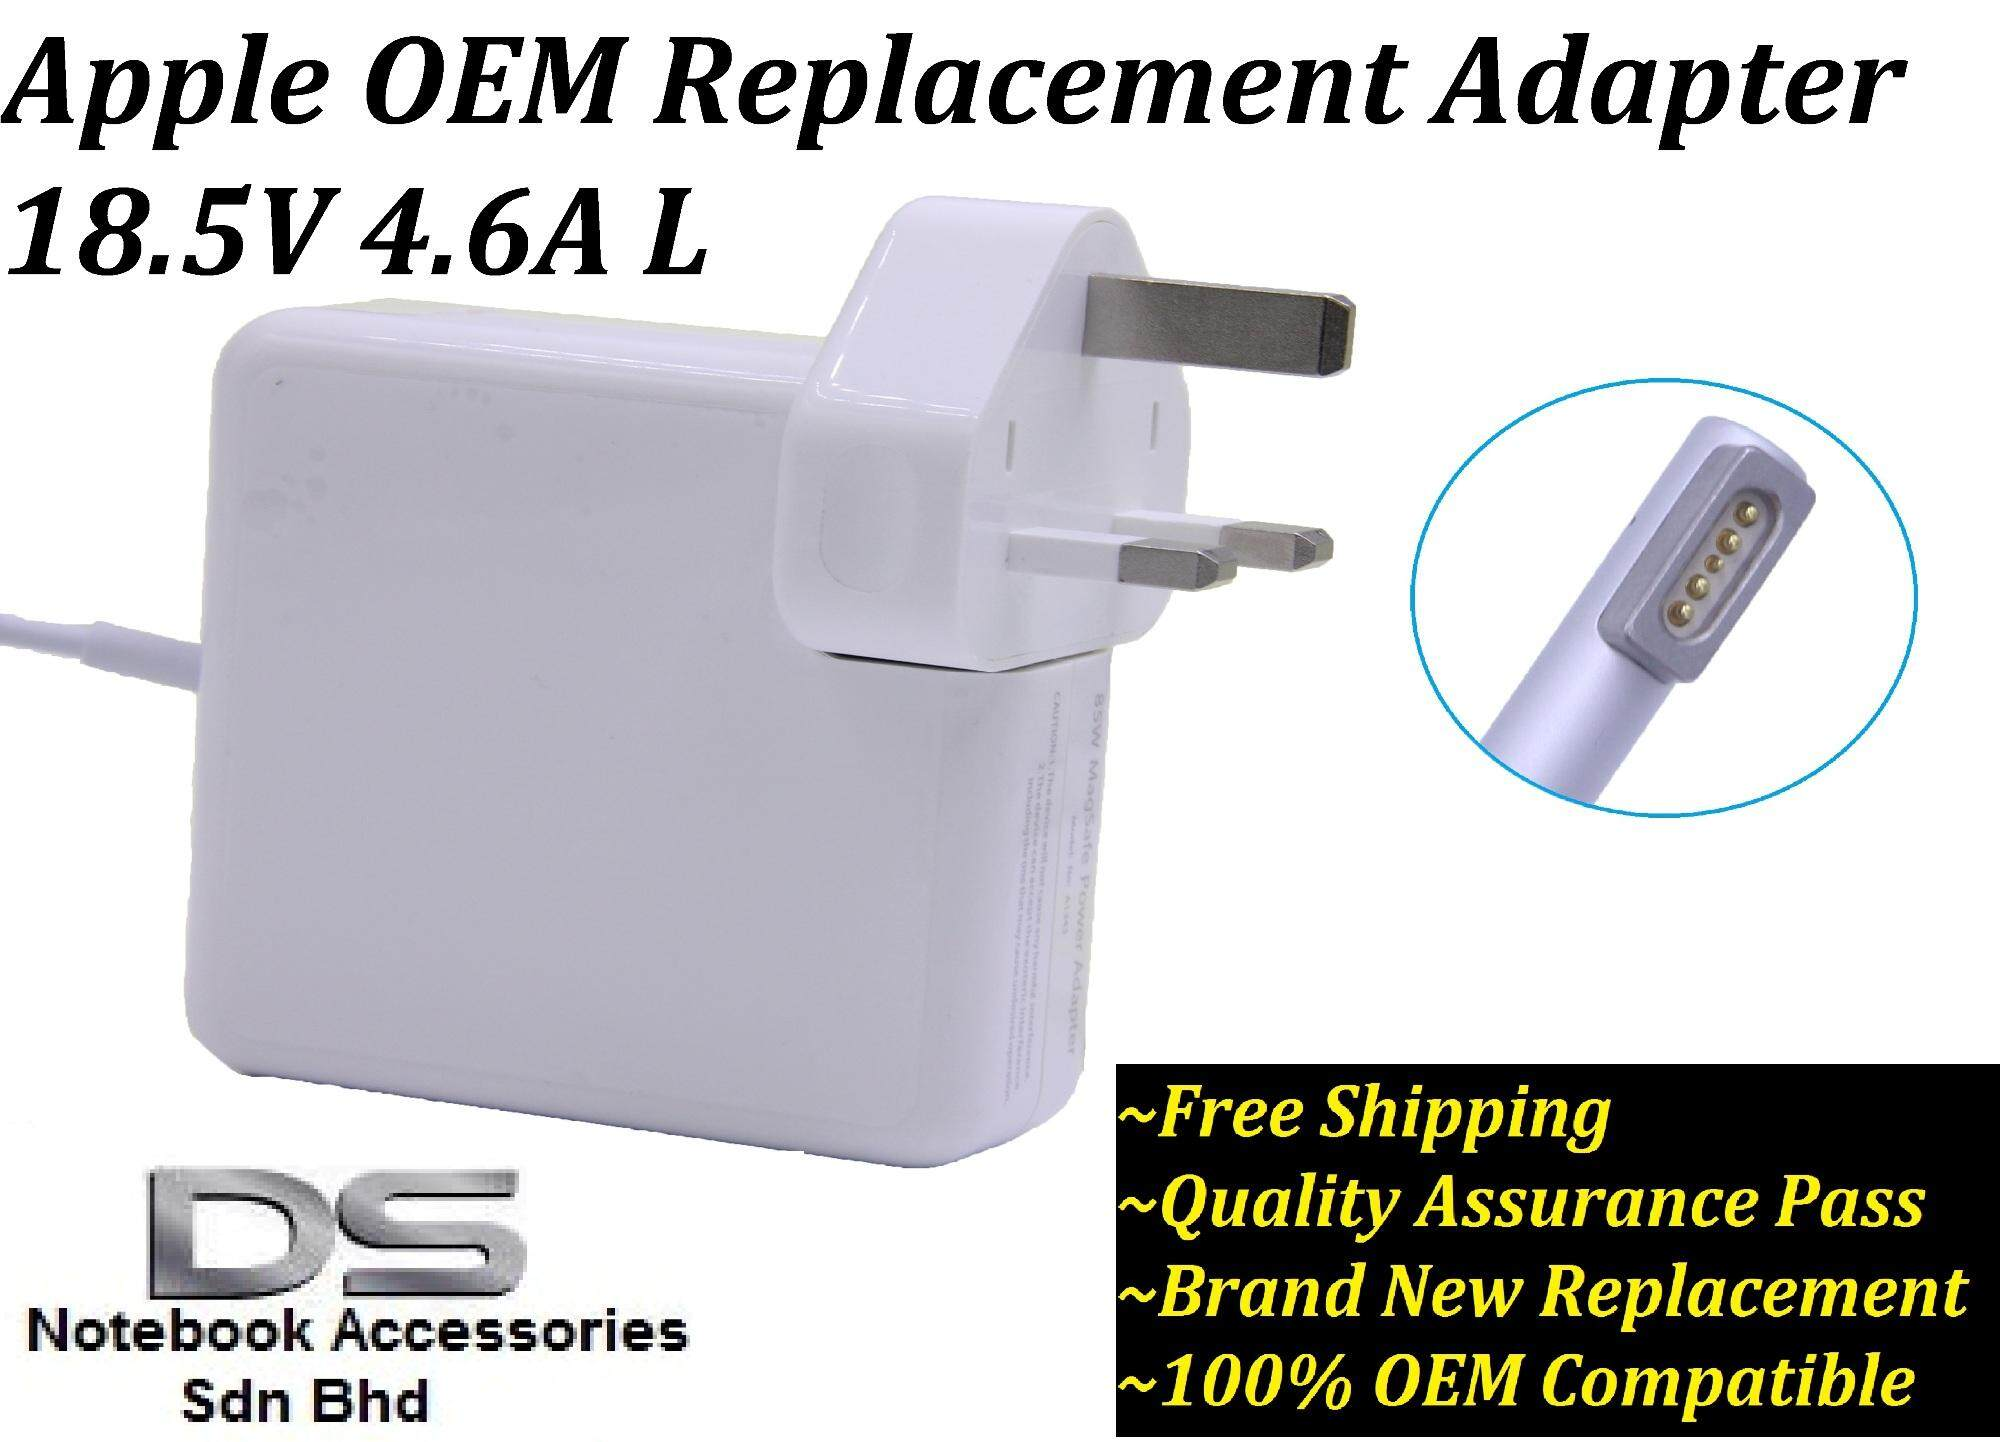 Apple Mac Power Adapters For The Best Prices In Malaysia Magsafe 85w A1343 Adapter Charger Macbook Pro 15 Original Oem 13 Inches Early Or Mid 2012